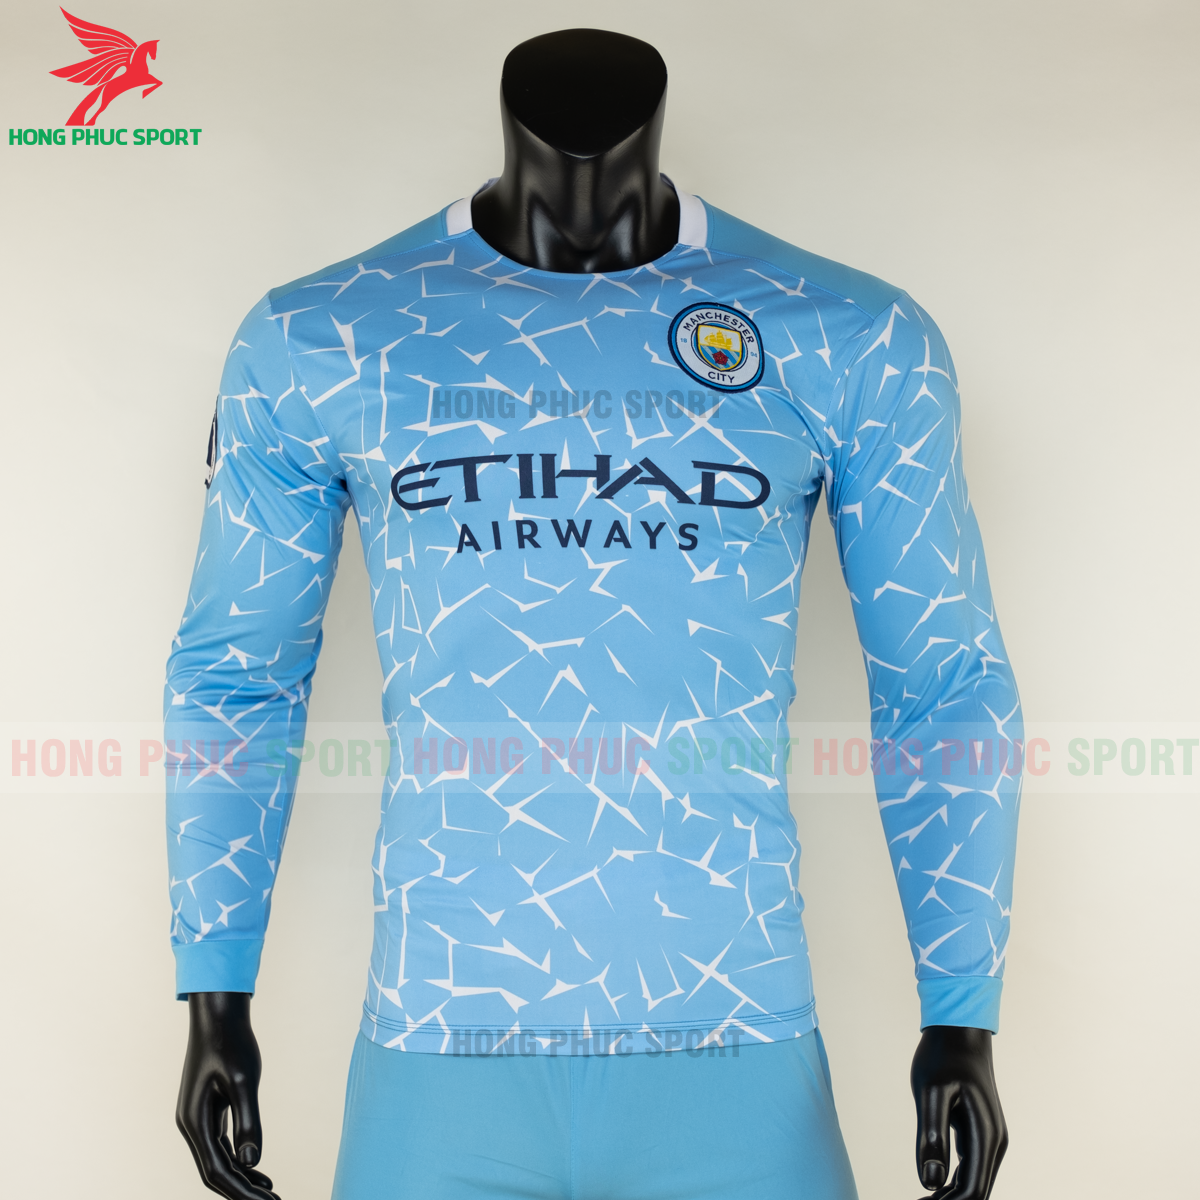 https://cdn.hongphucsport.com/unsafe/s4.shopbay.vn/files/285/ao-dai-tay-manchester-city-2020-san-nha-1-5f8fdbdc935b3.png